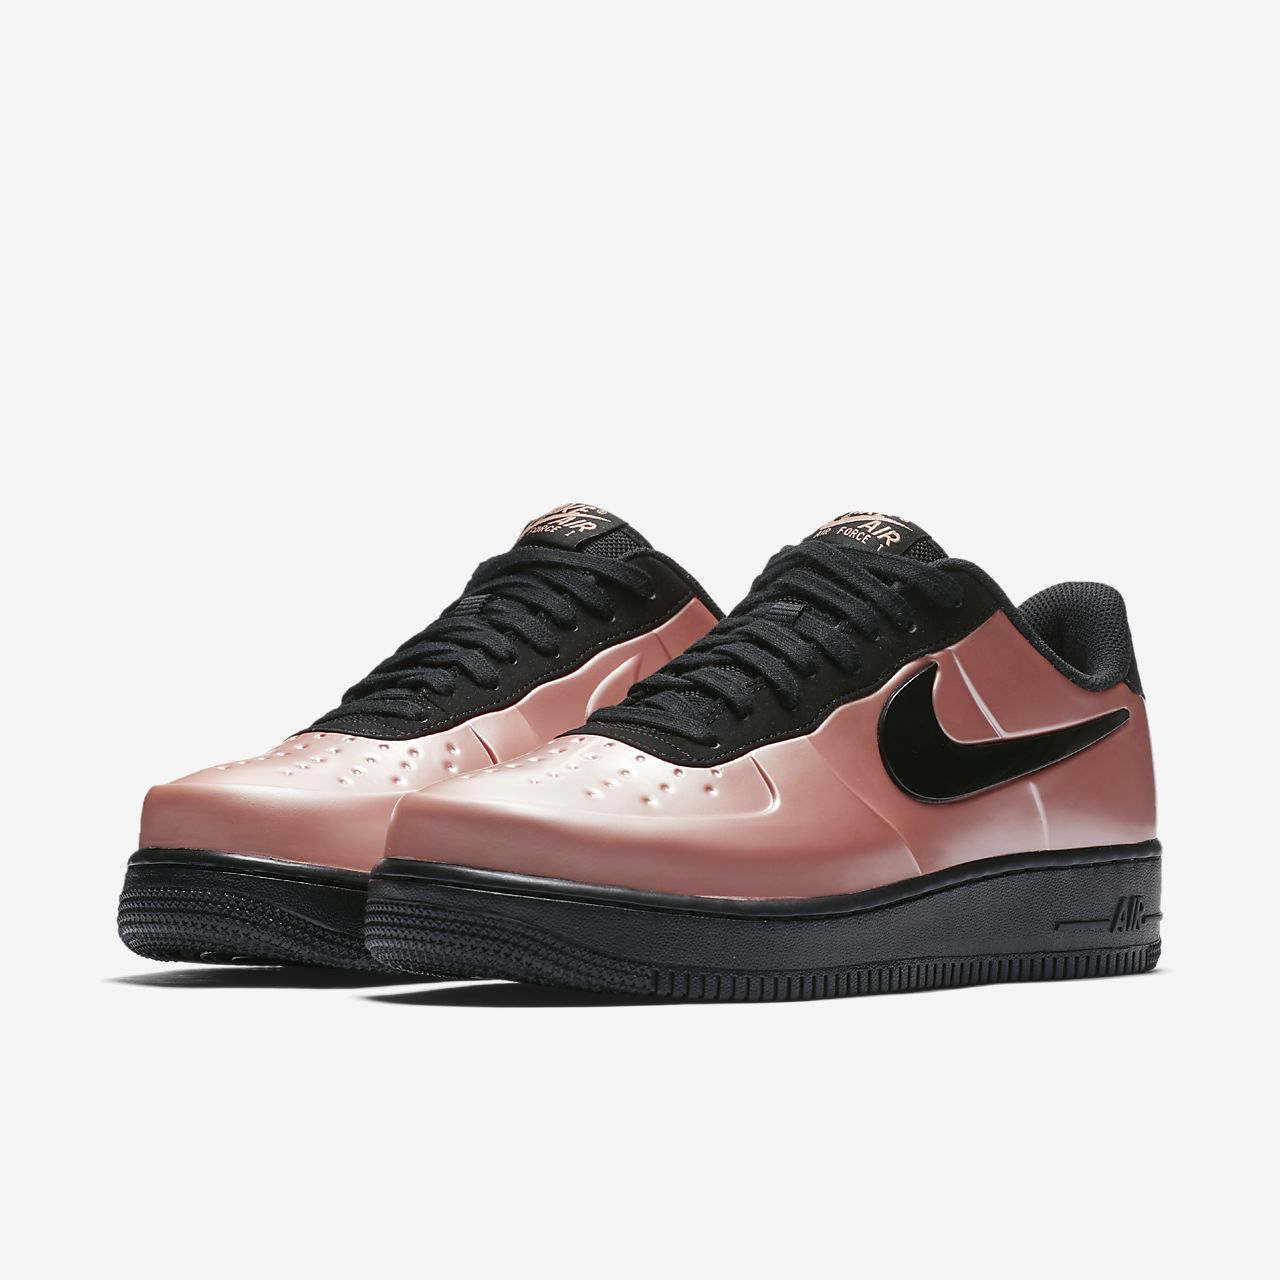 nike air force 1 foamposite pro cupsole review